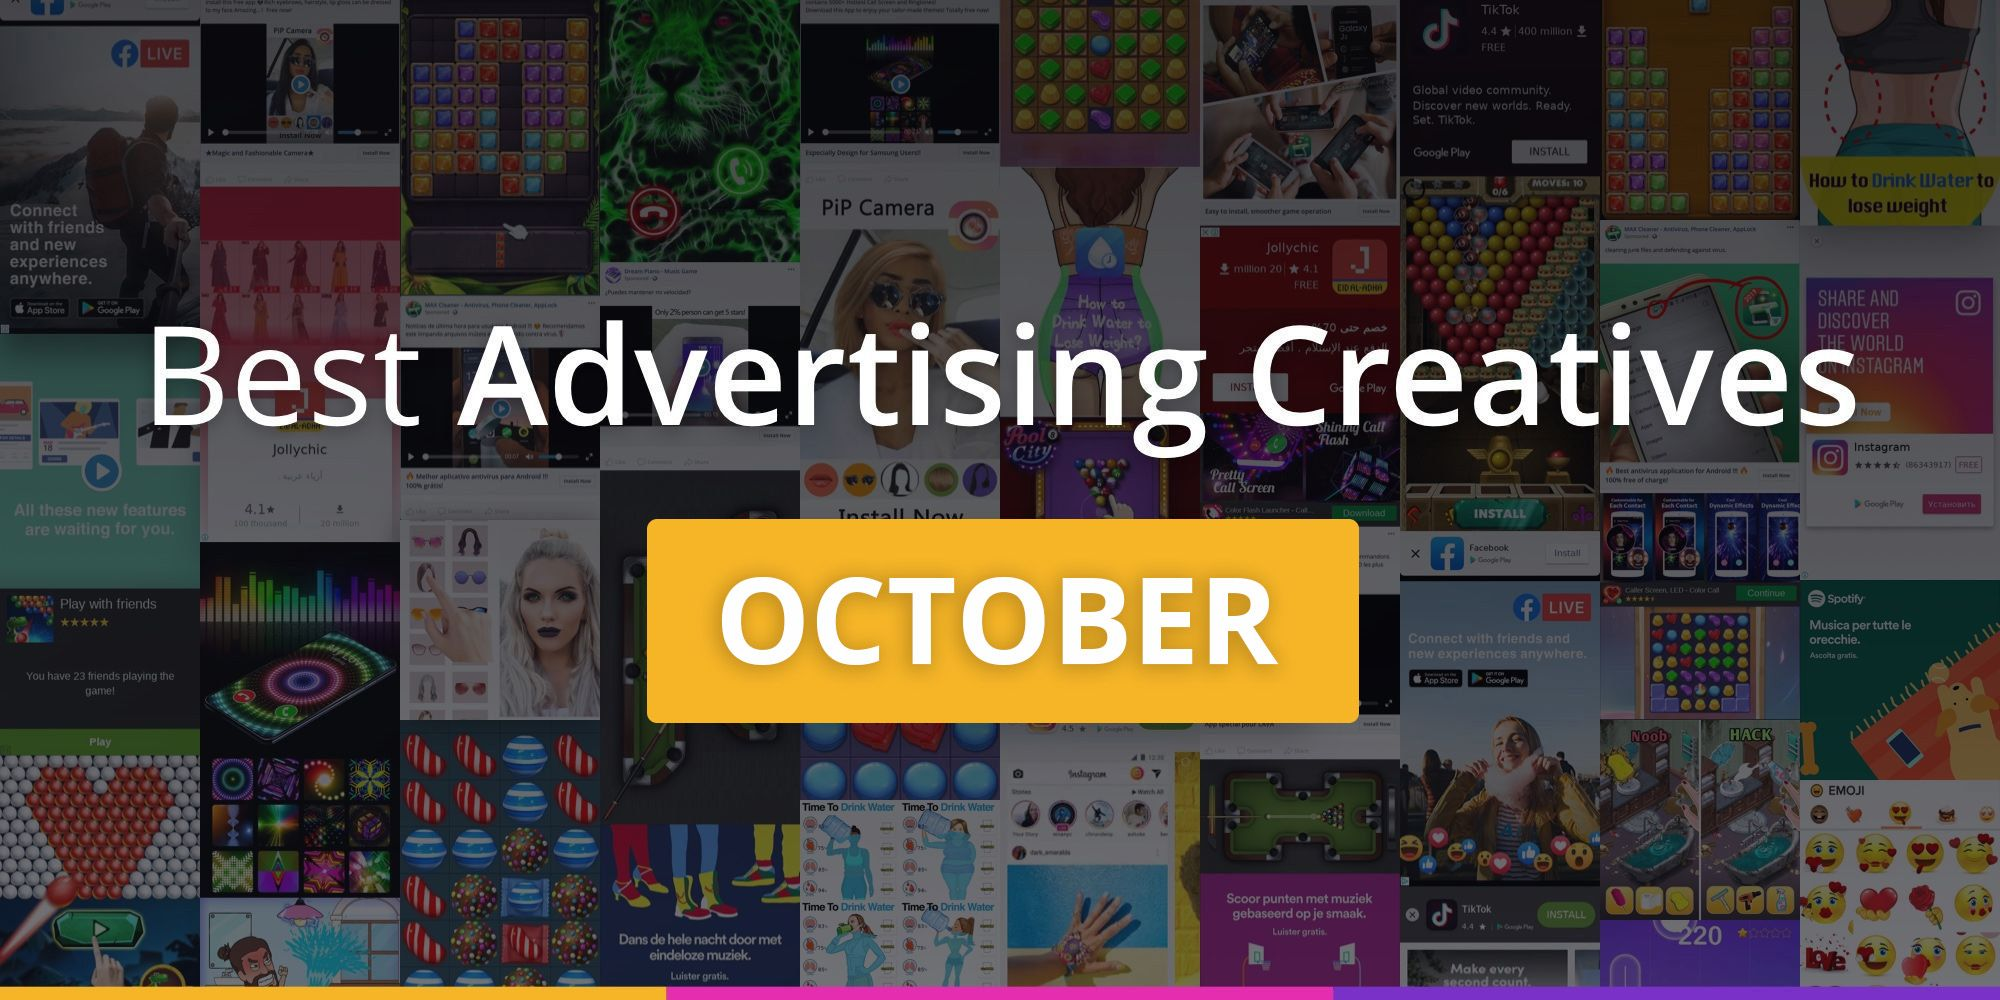 Best advertising creatives of October